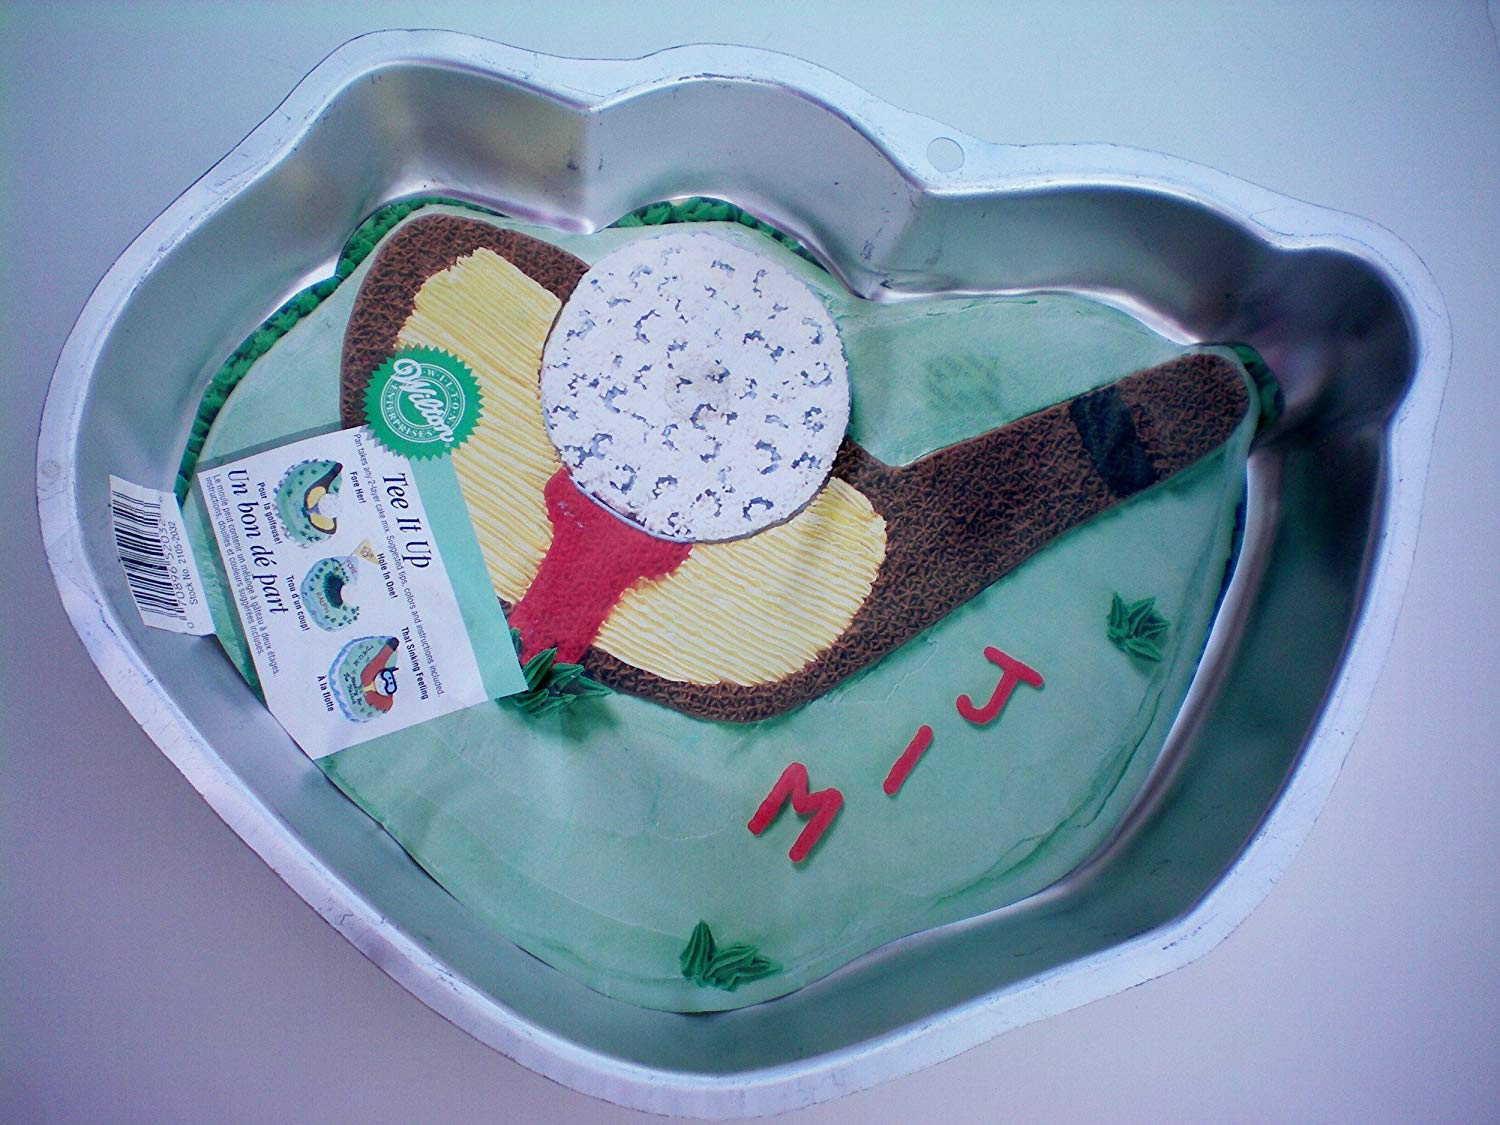 Wilton Tee It Up or Golf Club and Ball Cake Pan -- Make it a Hole in One!!! as shown Make it a hole in one with this!!!